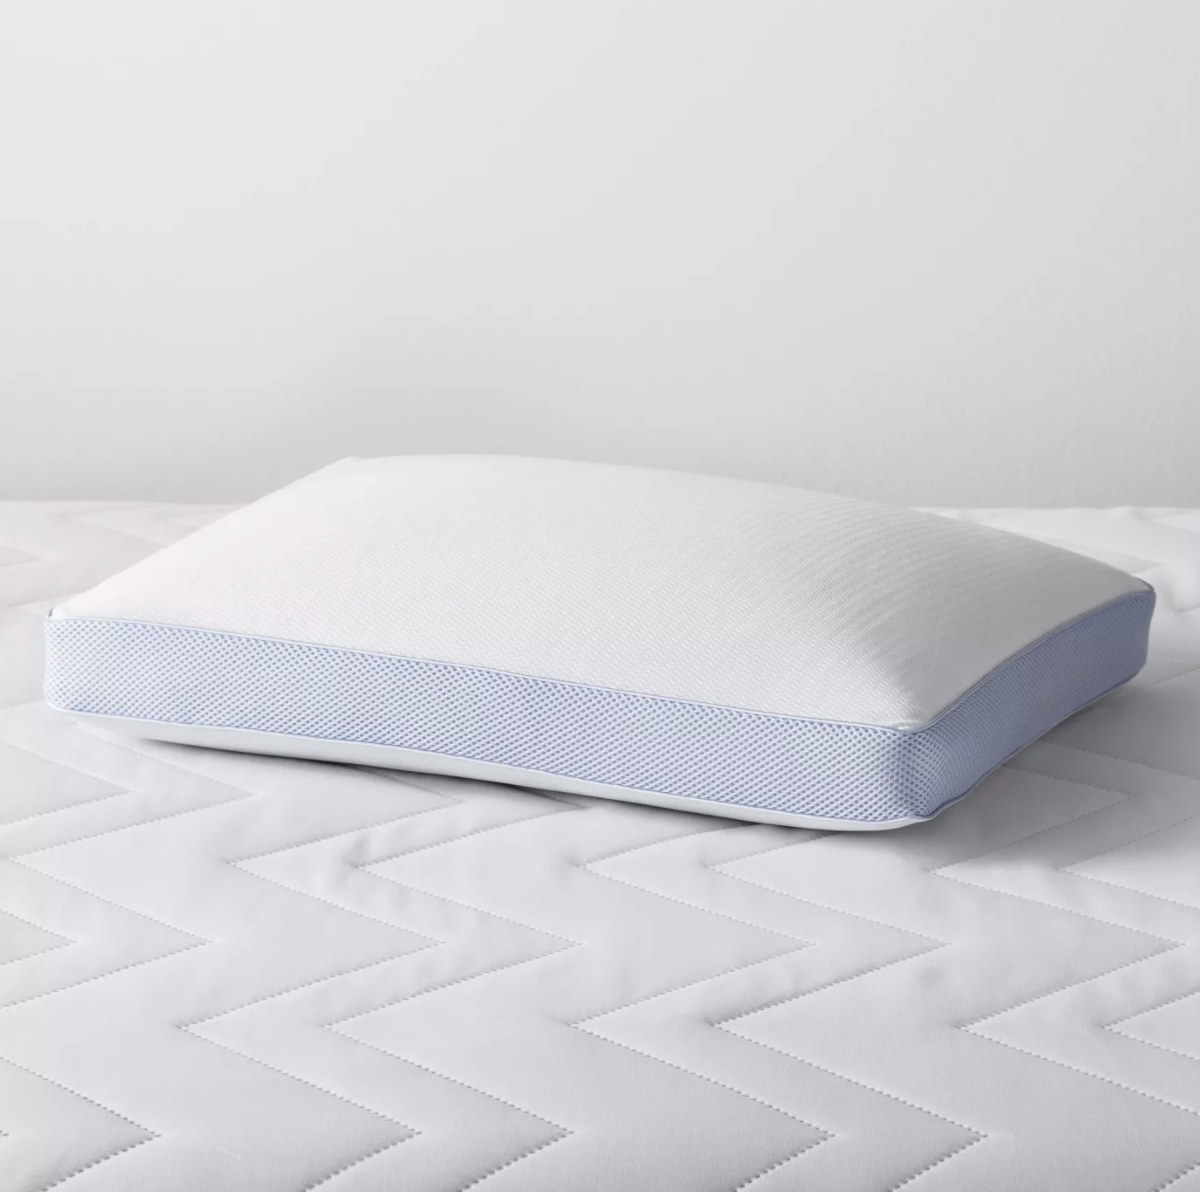 The white pillow with blue edges